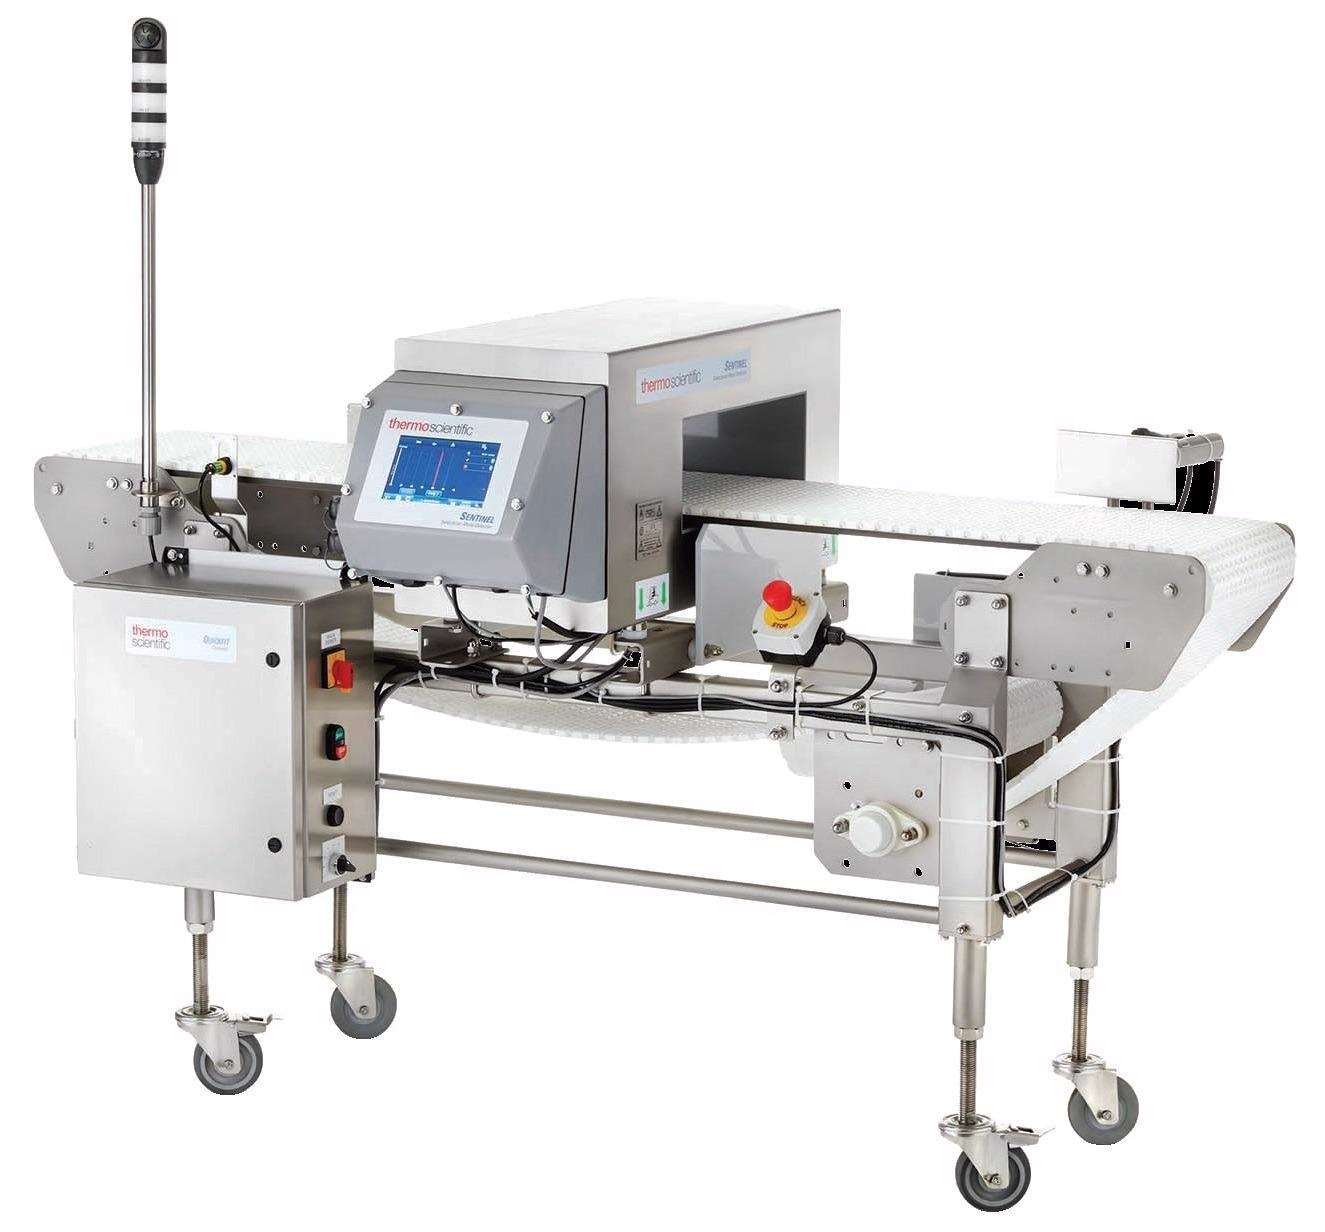 Frozen Food: Assuring Safety with Metal Detection